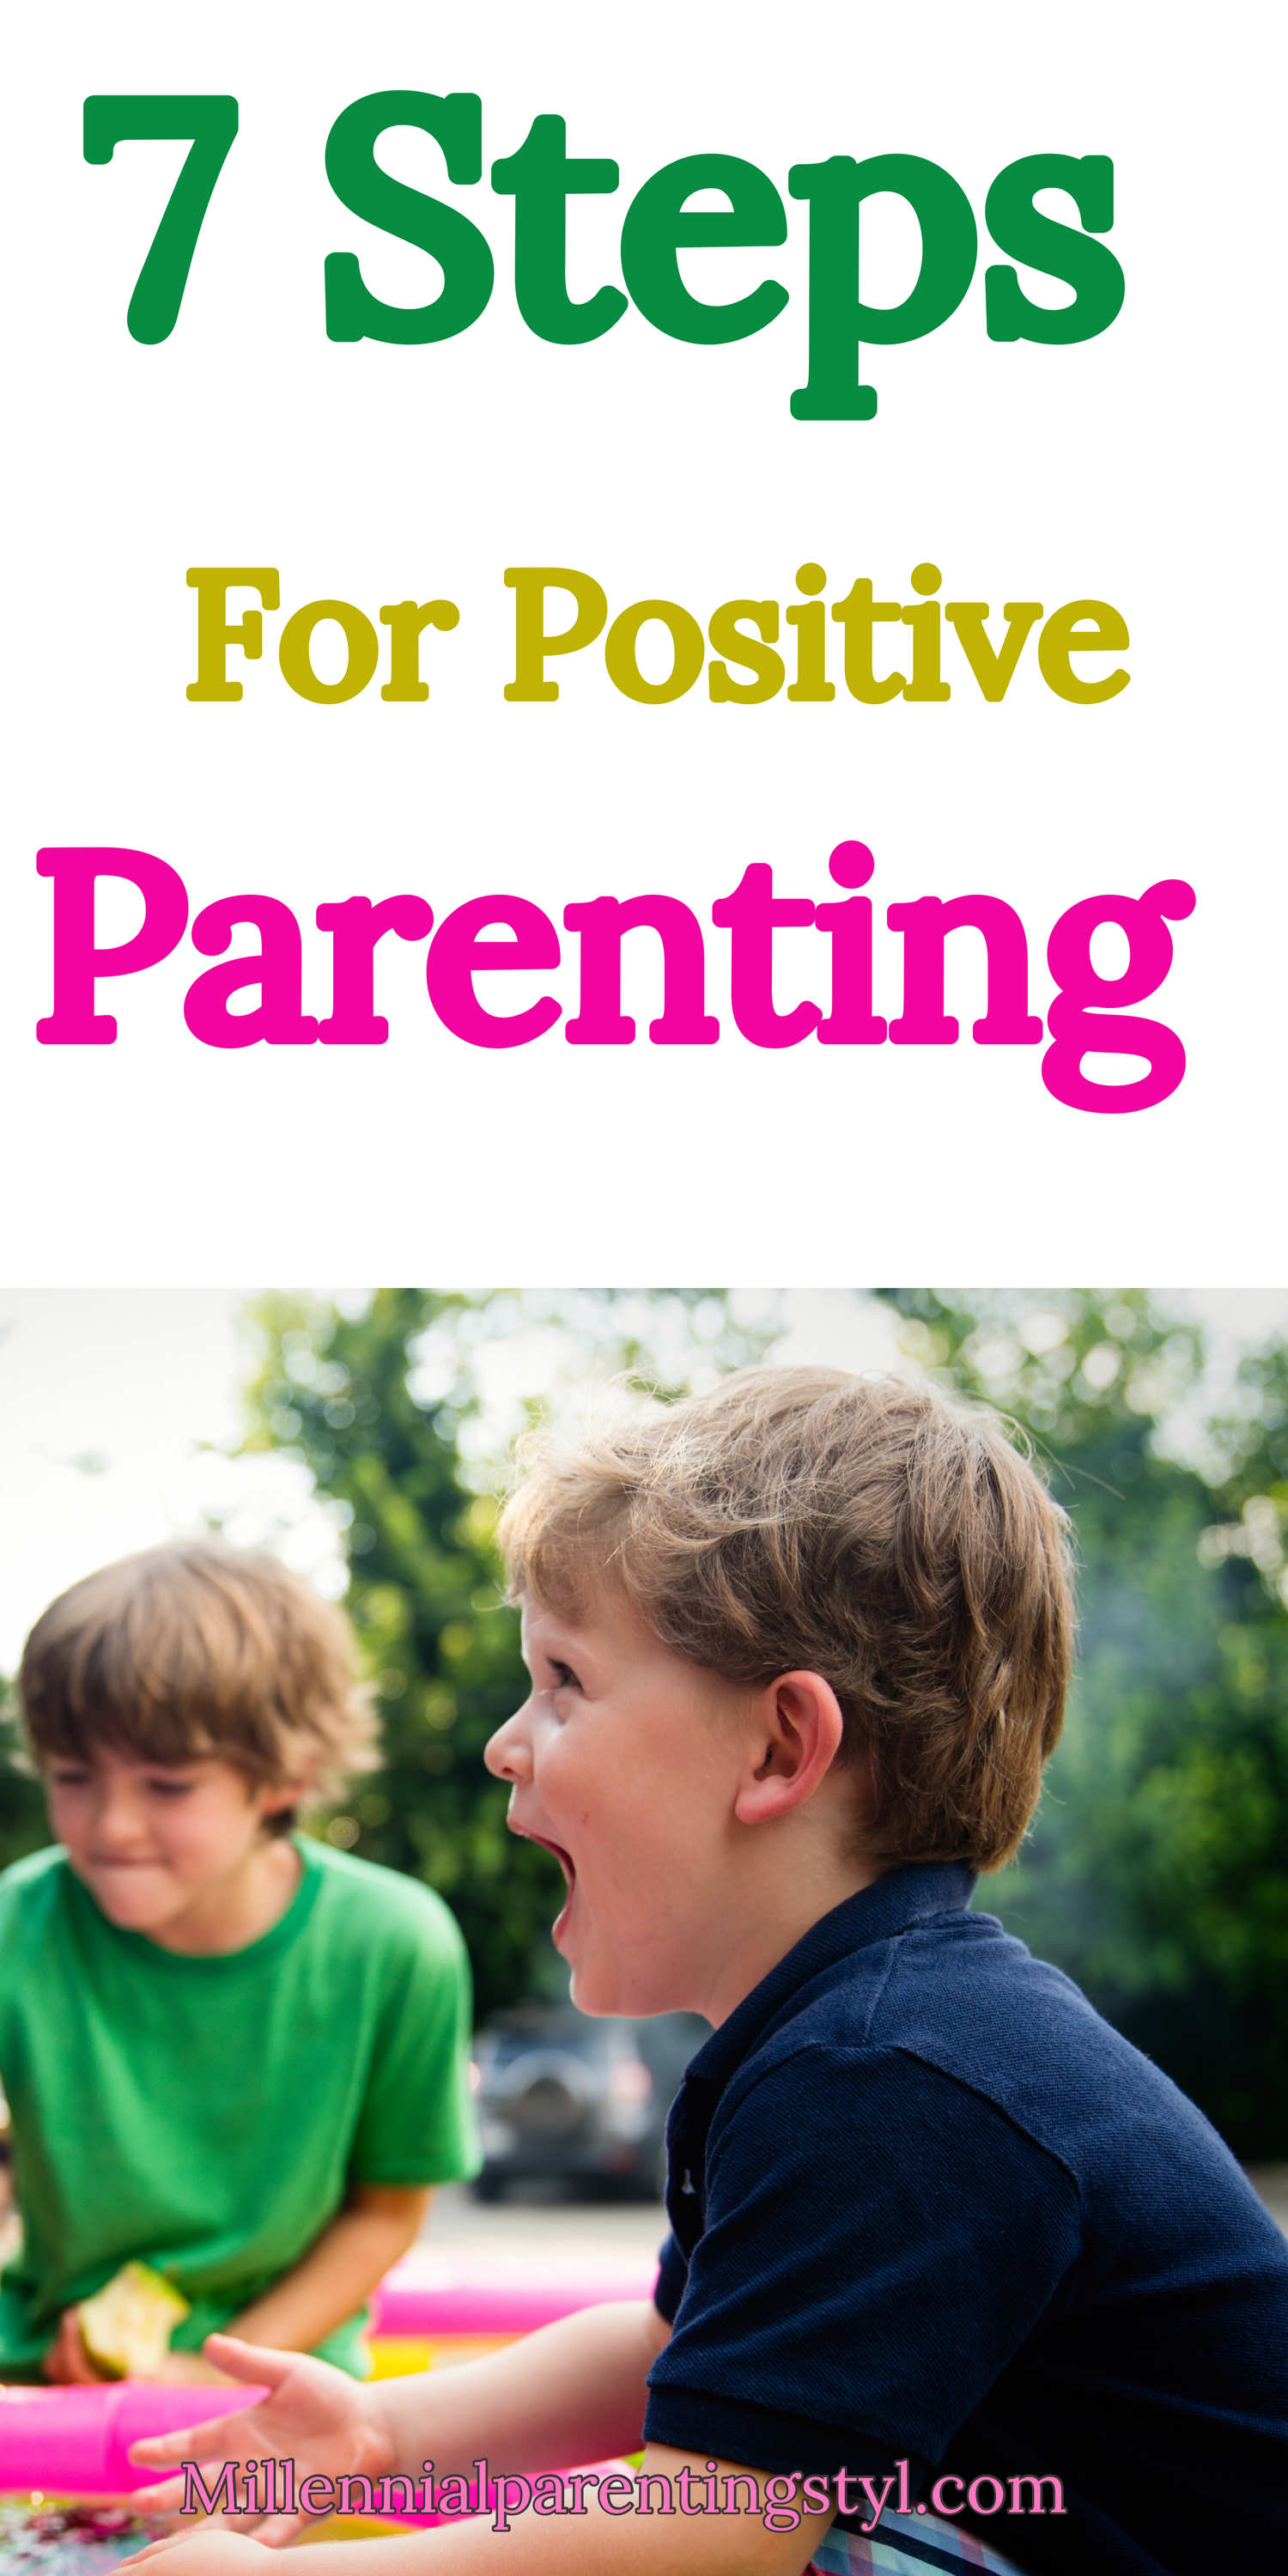 7 Steps For Positive Parenting Parenting Styles Differ